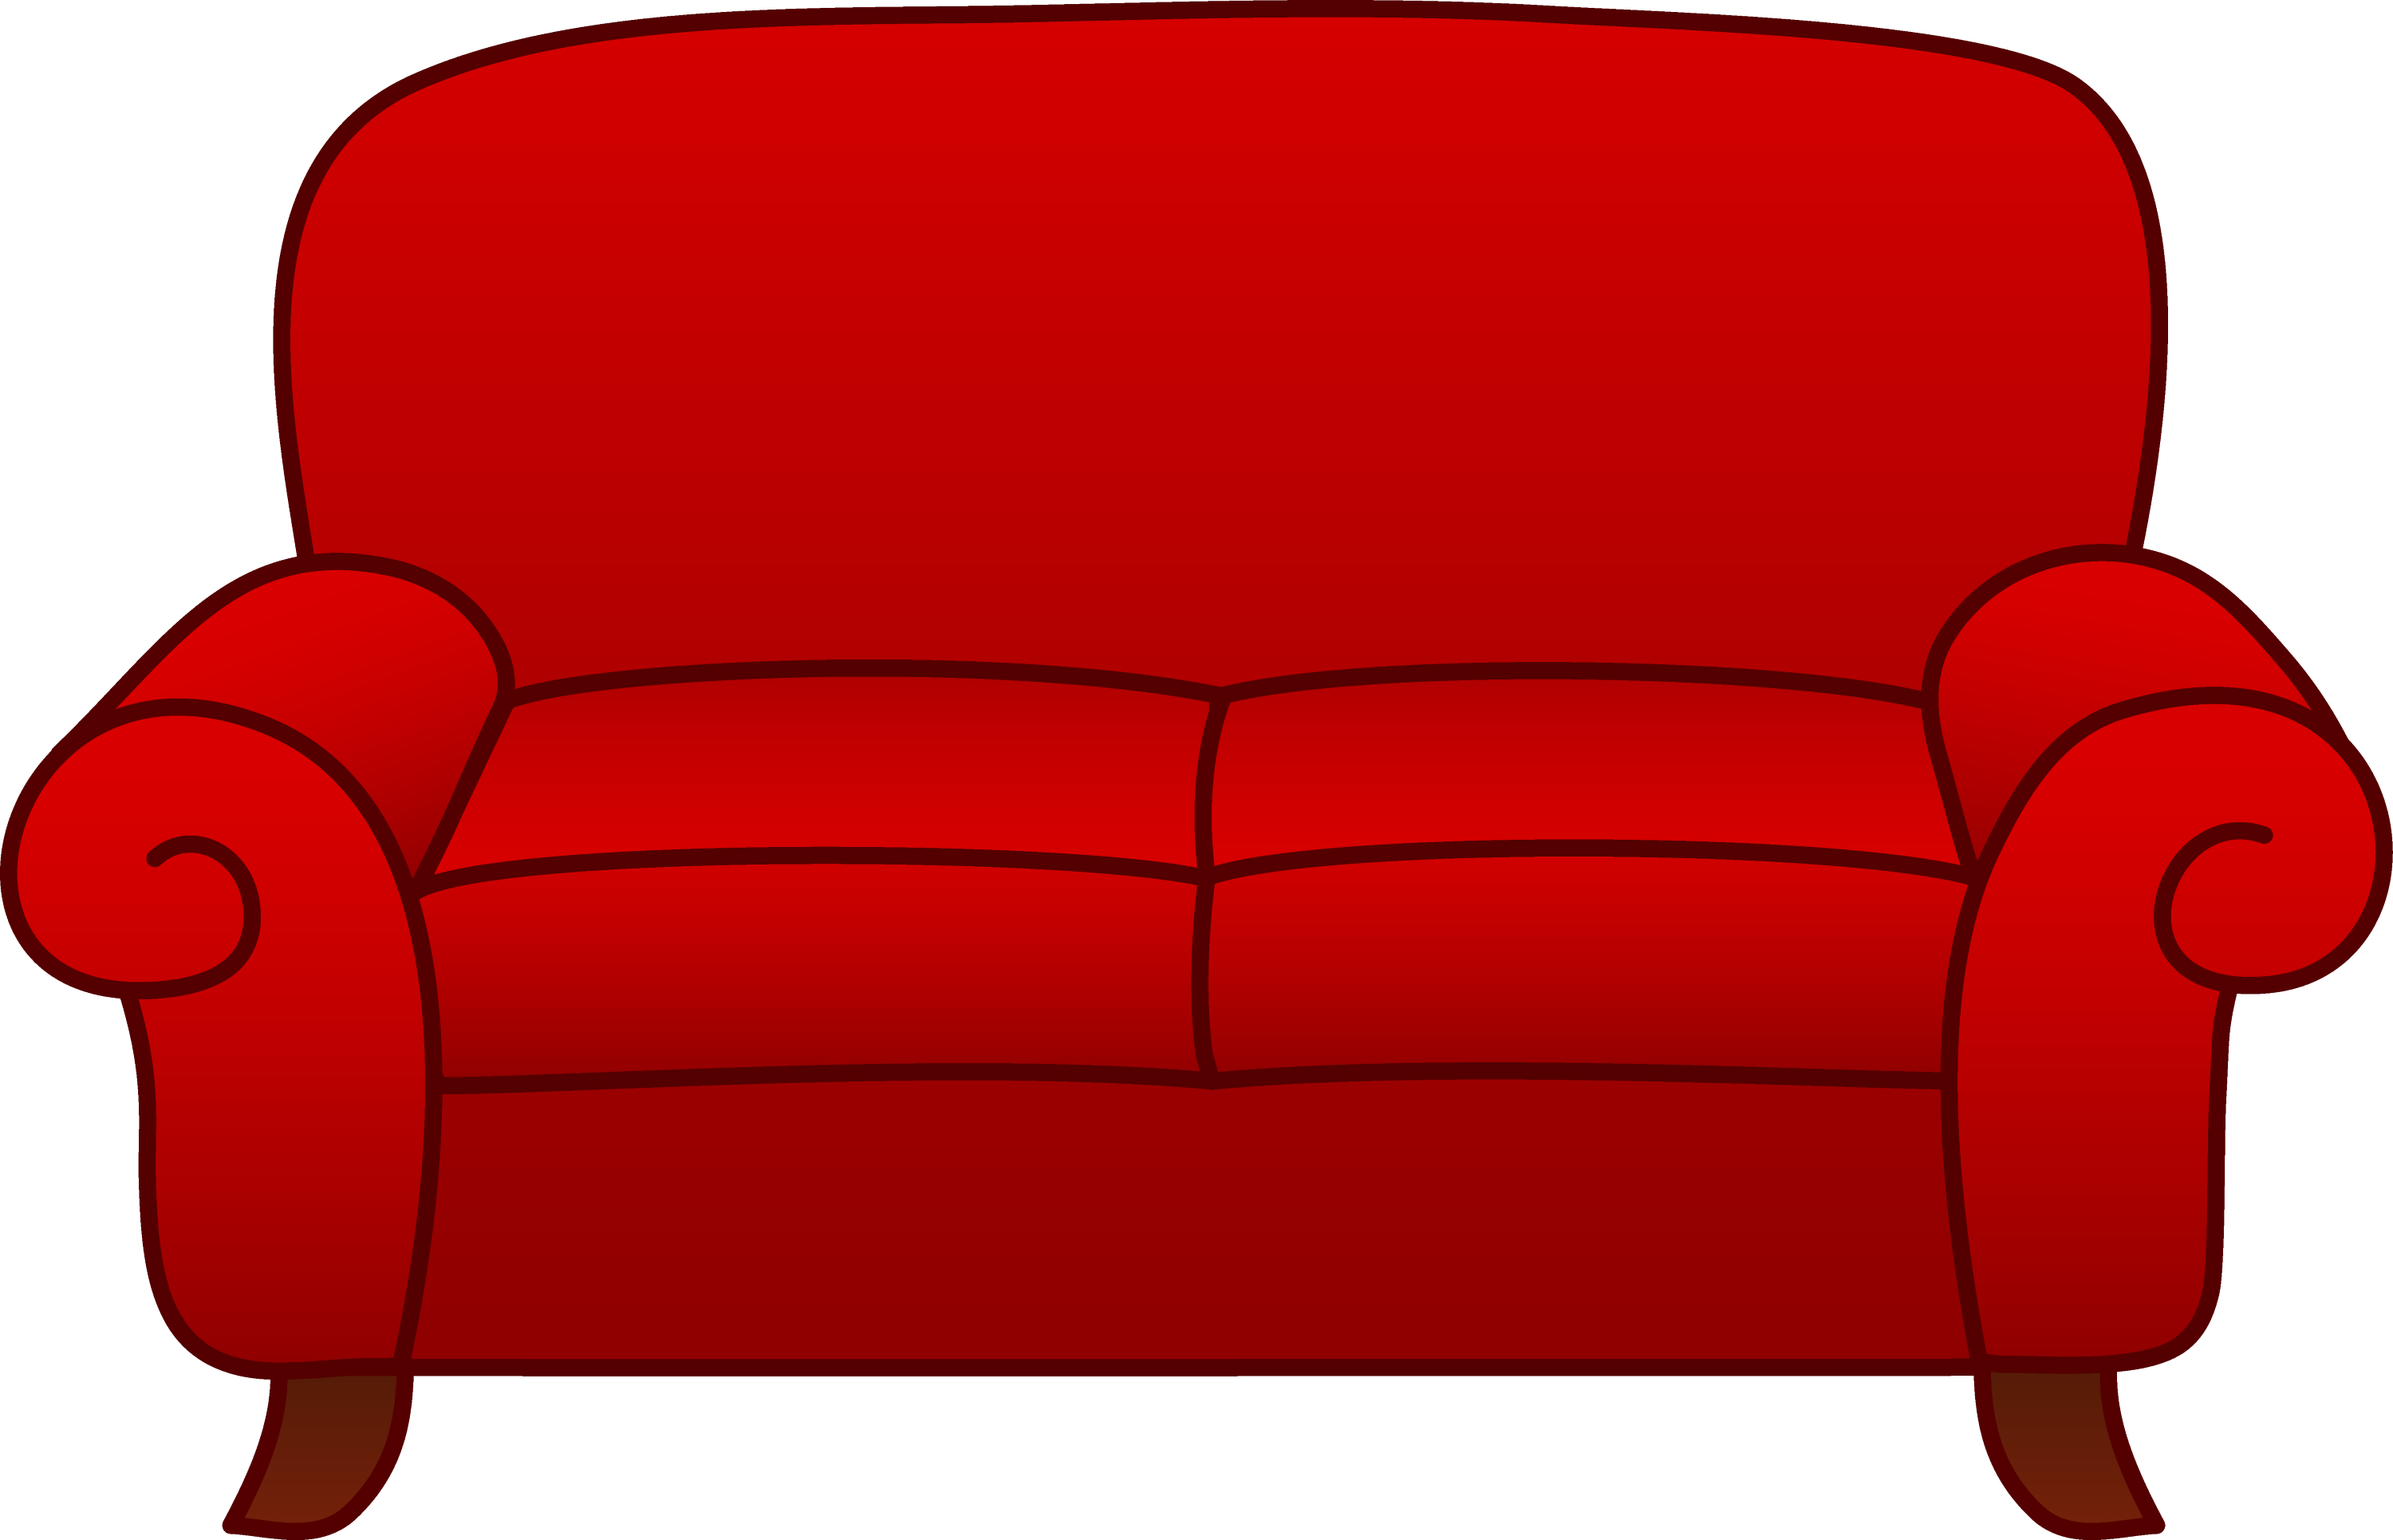 Red Sofa Clip Art